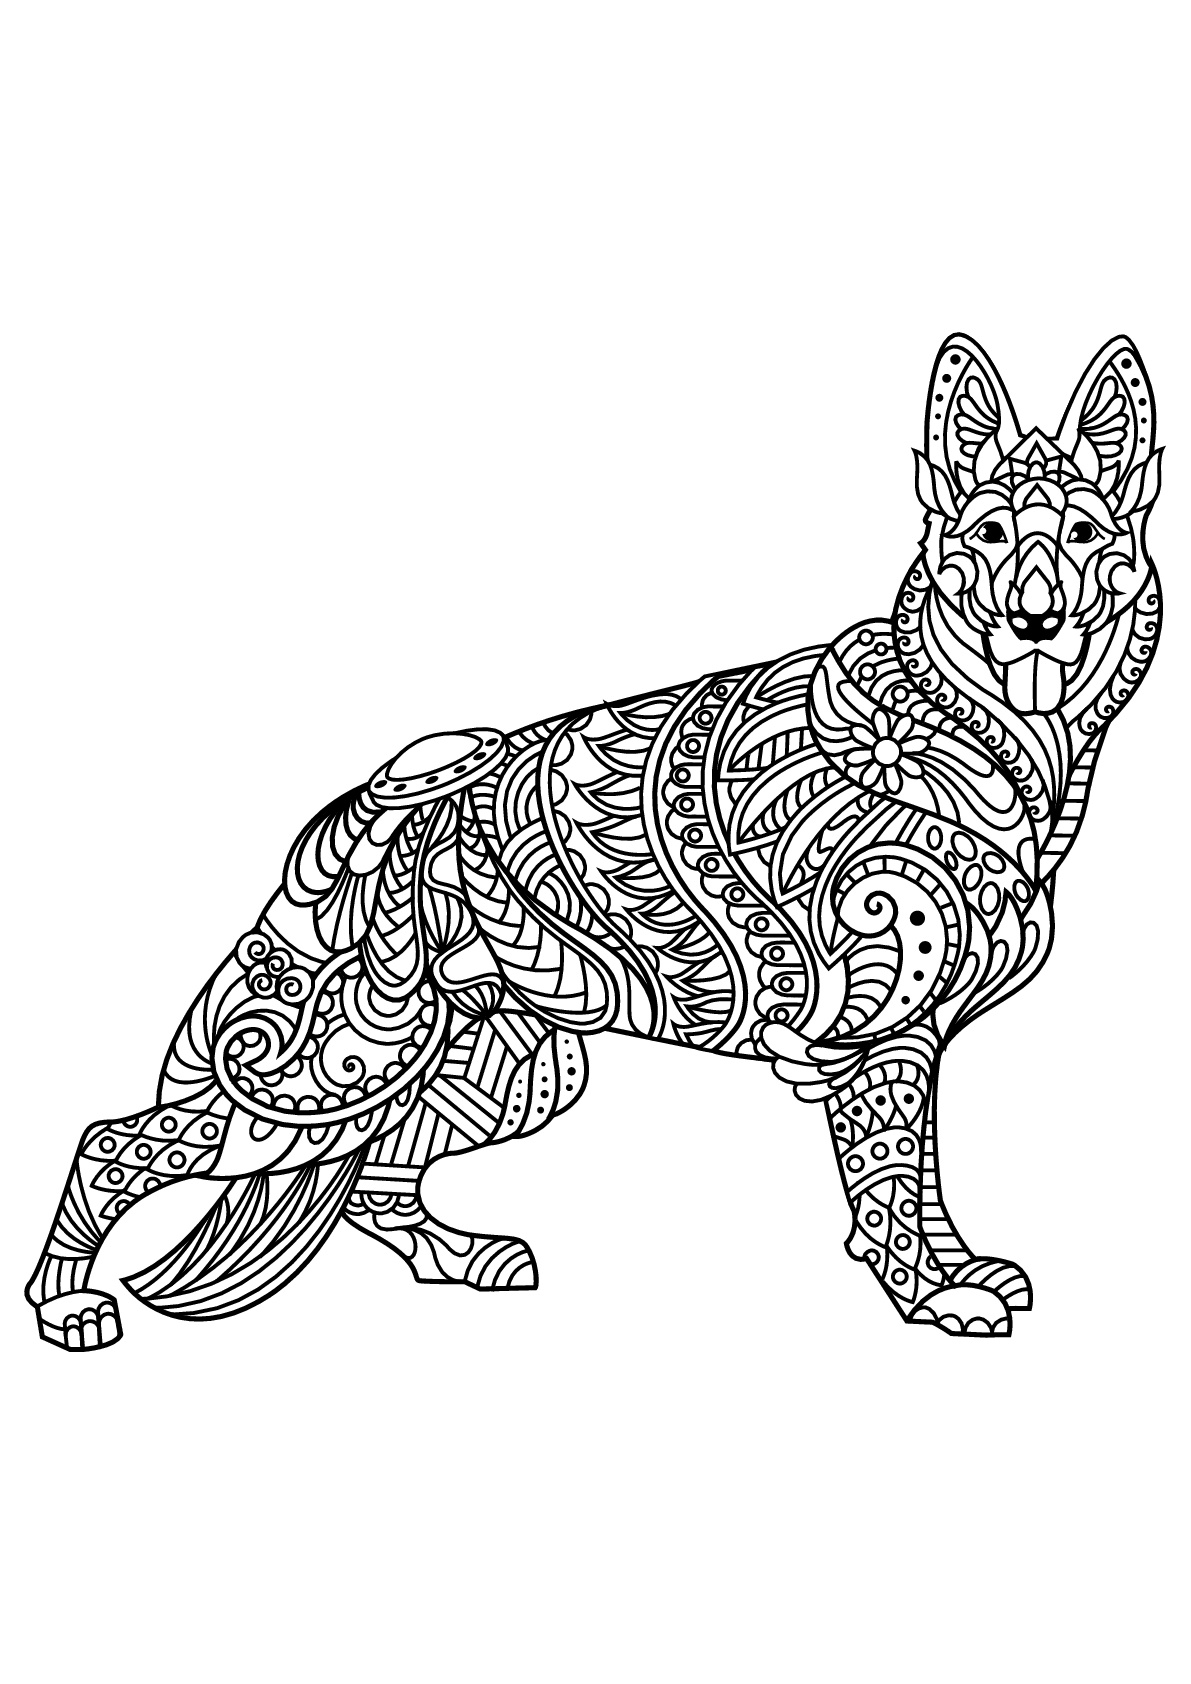 coloring pages for adults dogs dog coloring pages for adults best coloring pages for kids pages for coloring adults dogs